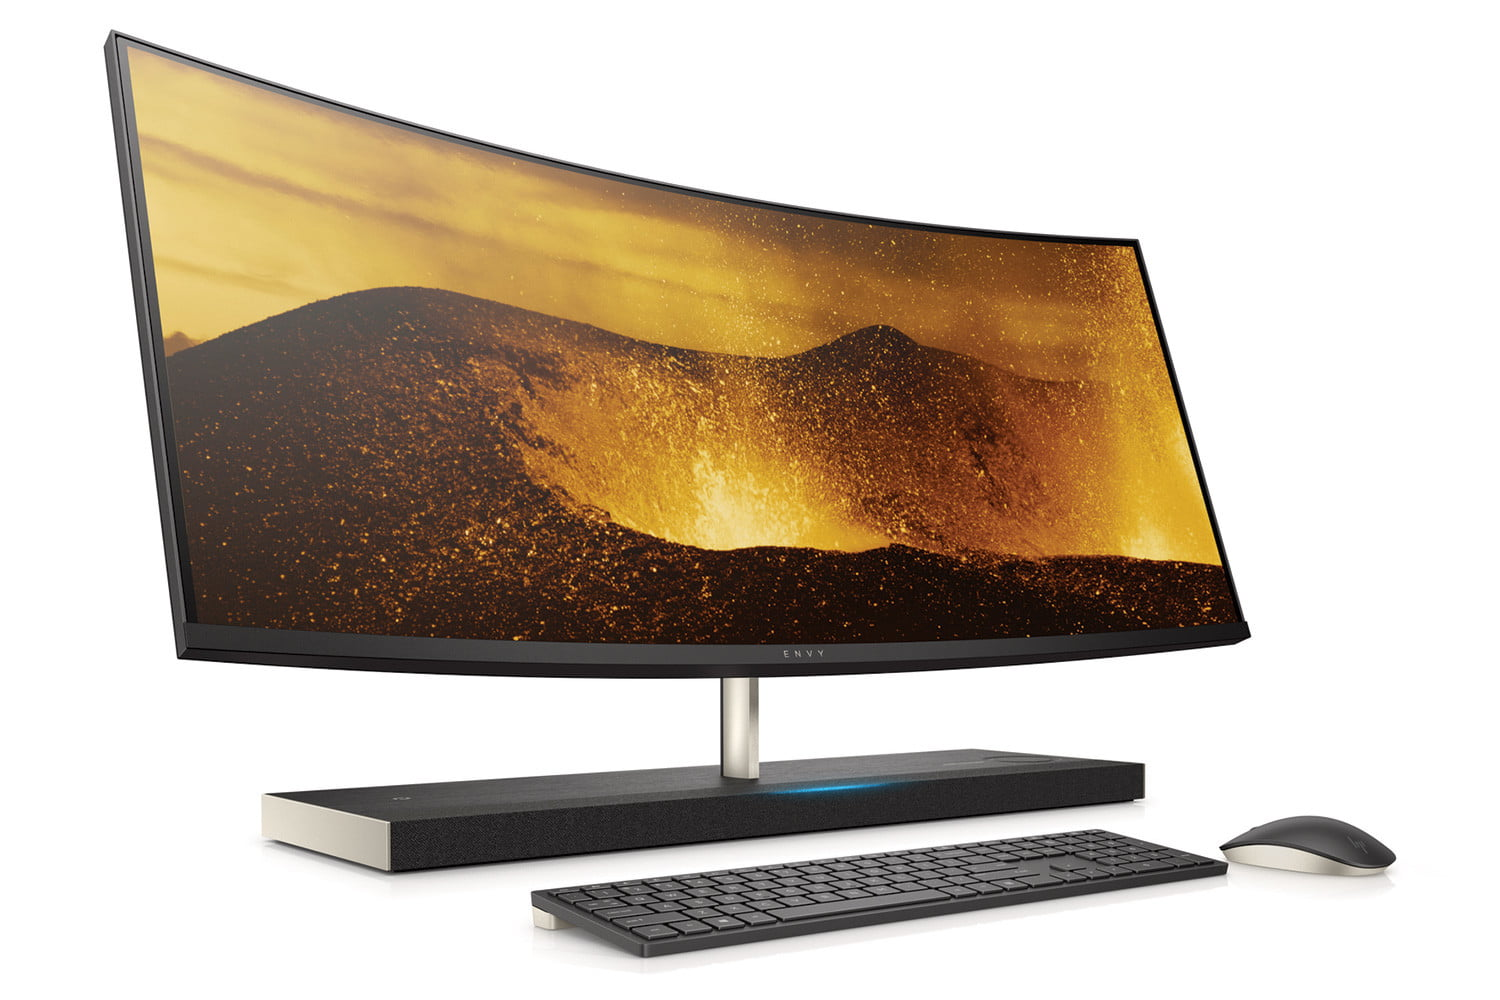 hp envy elitebook and more curved aio cameradown frontright